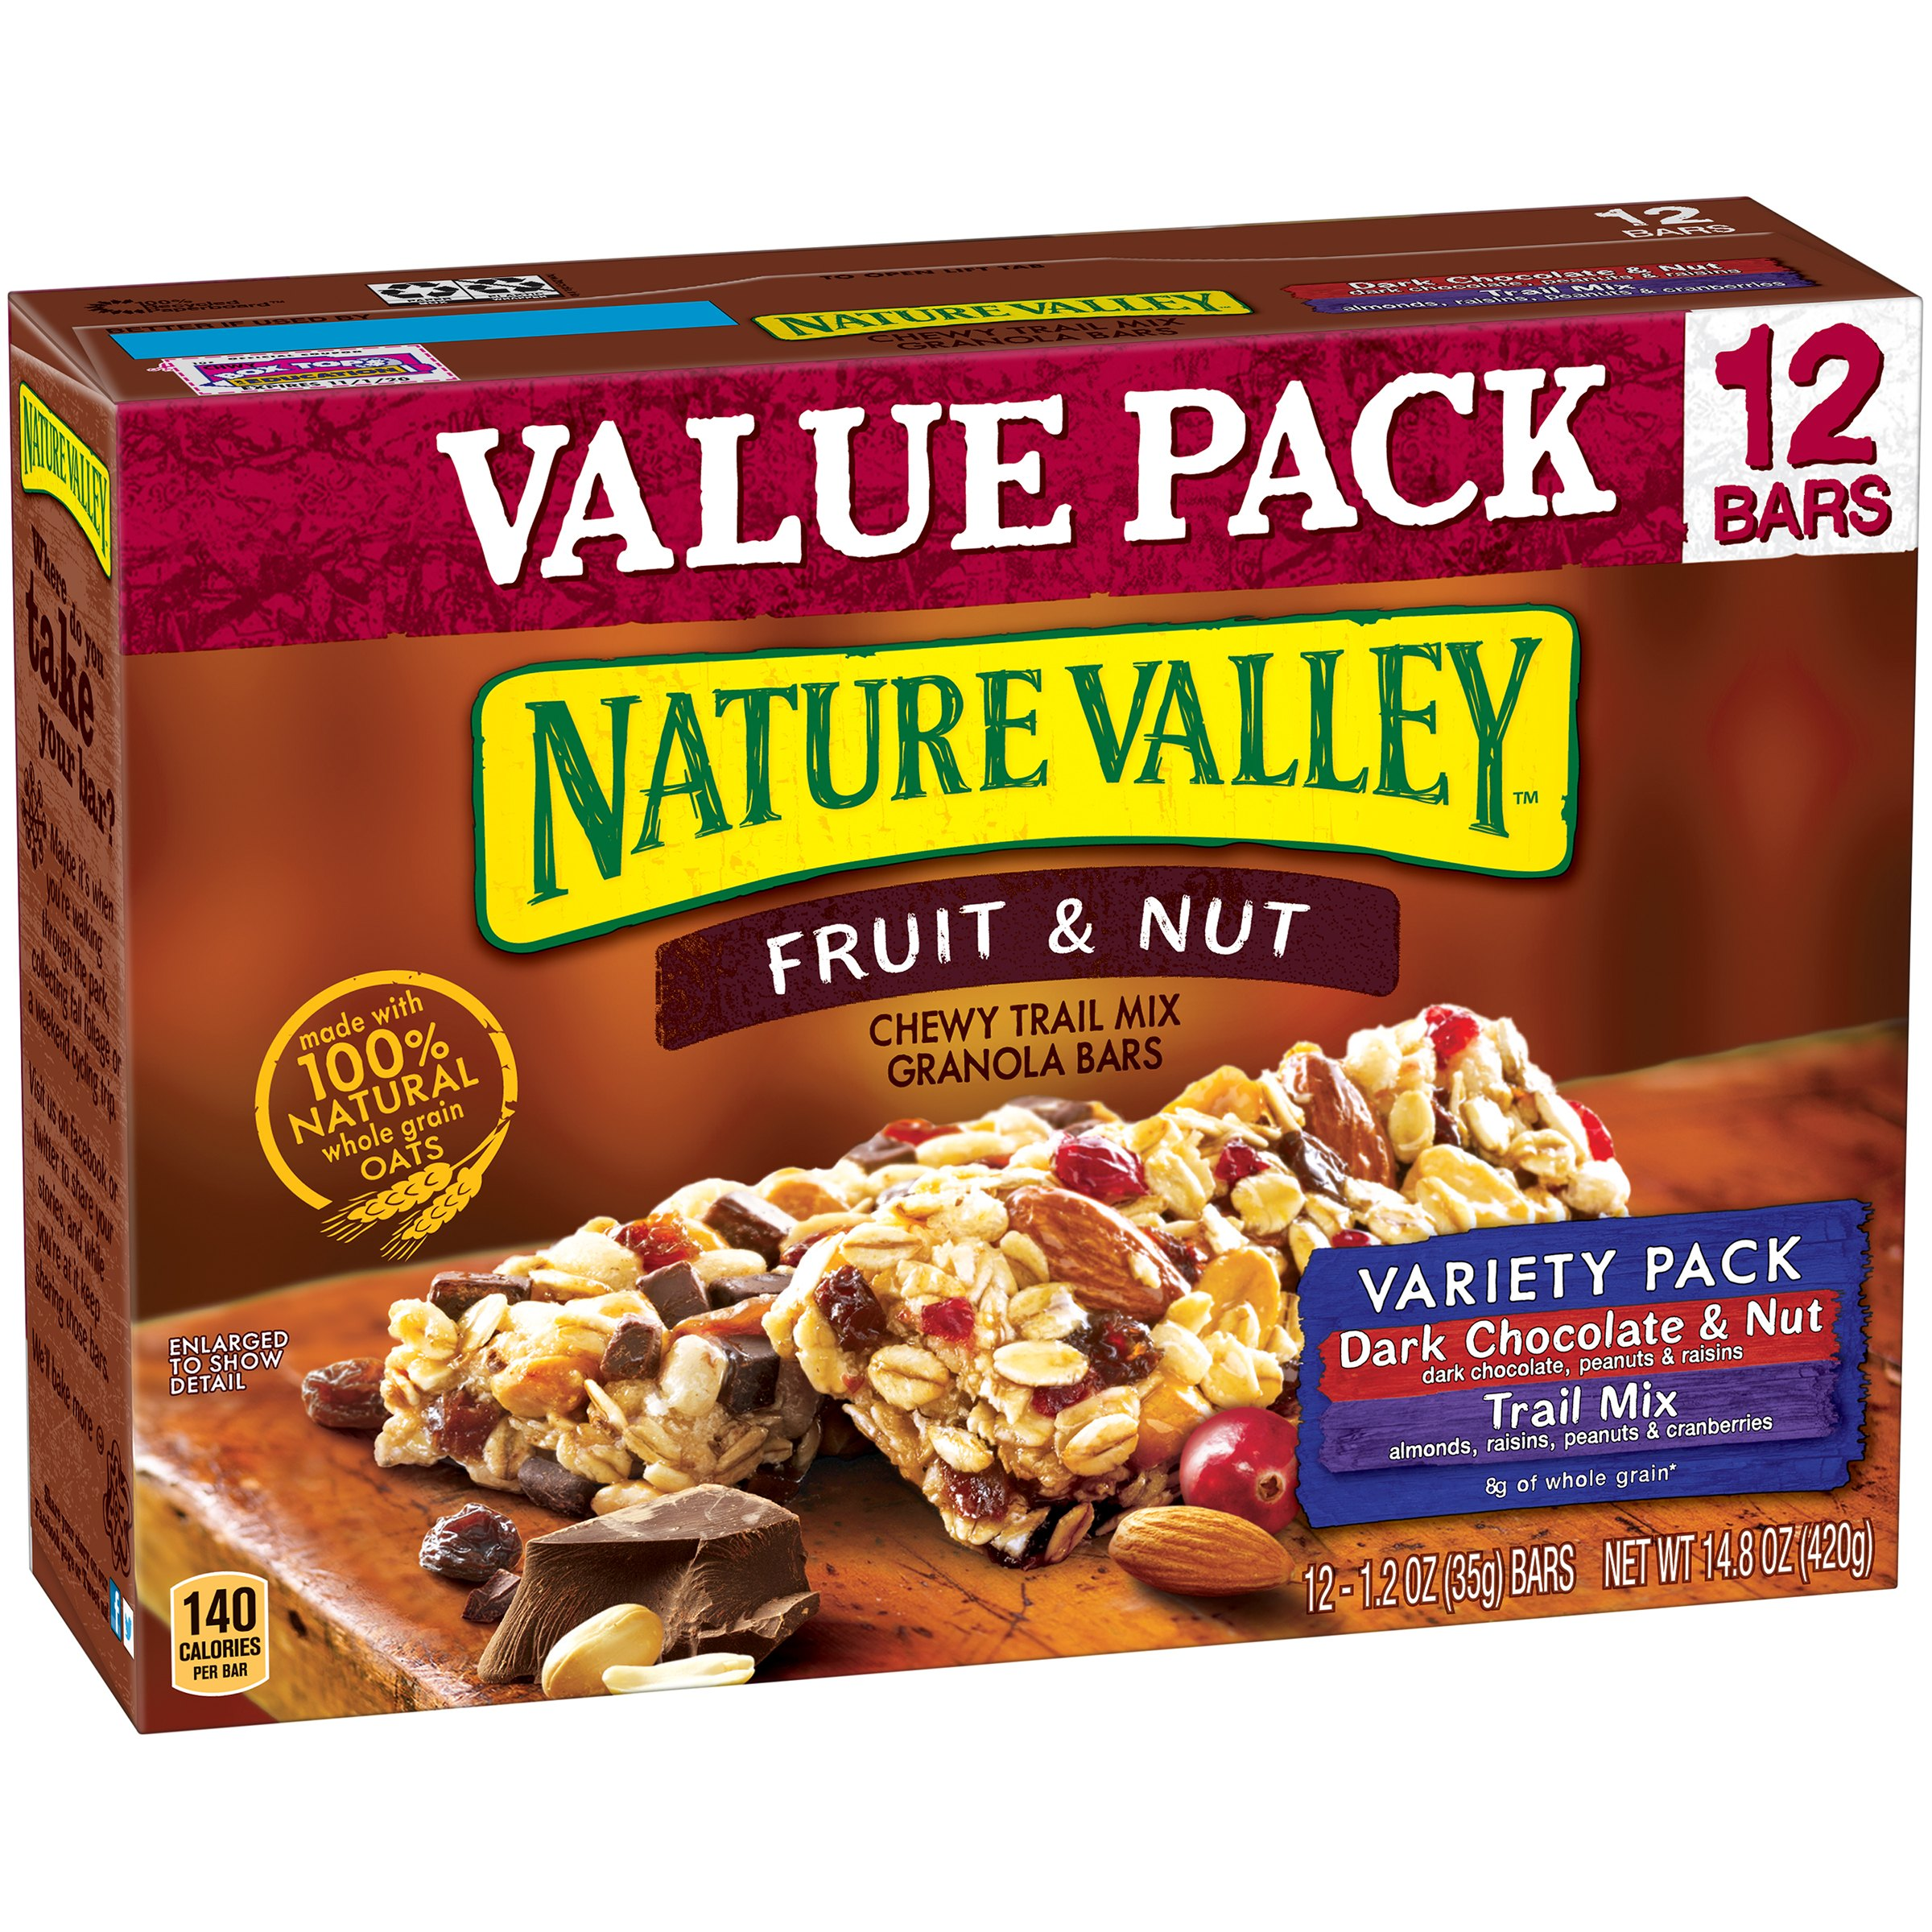 (4 Pack) Nature Valley Chewy Granola Bar Trail Mix Variety Pack of Dark Chocolate & Nut and Fruit & Nut 12 - 1.2 oz Bars